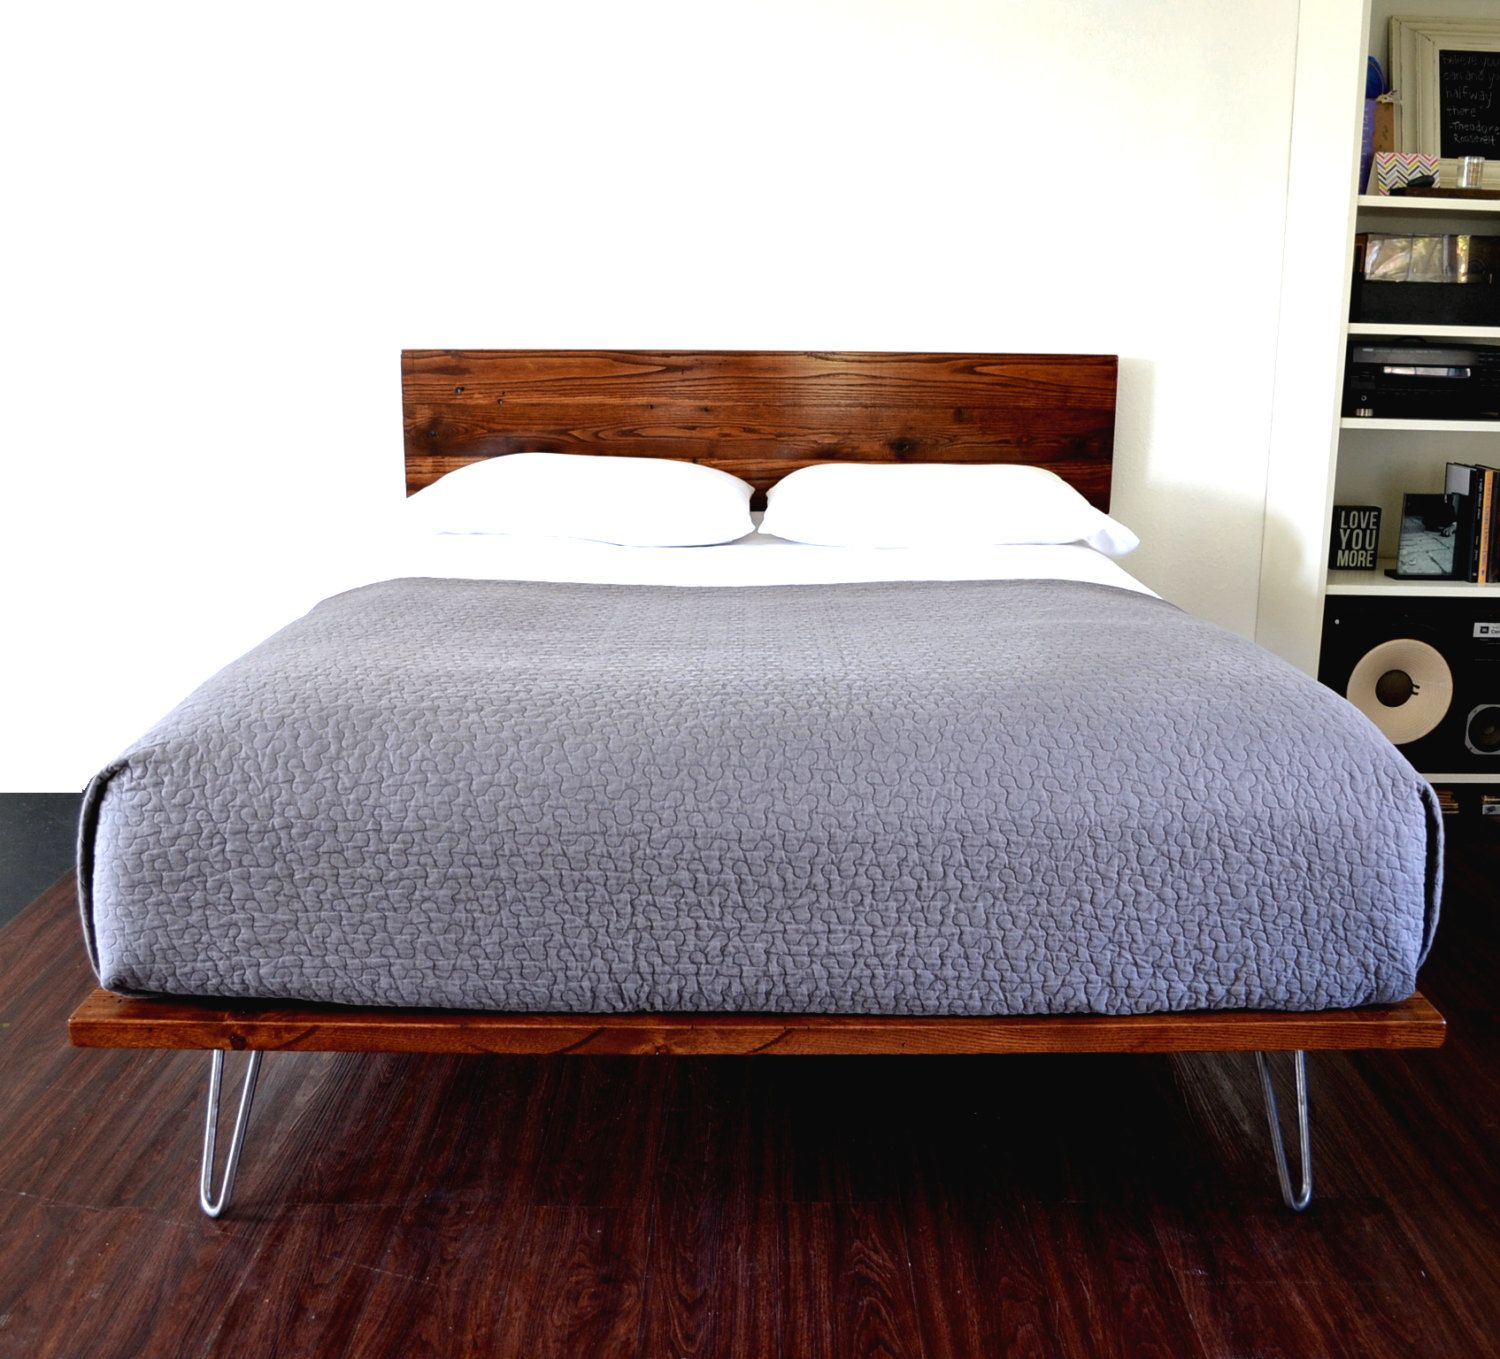 Pictures of platform beds - Platform Bed And Headboard Queen Size On Hairpin Casanovahome